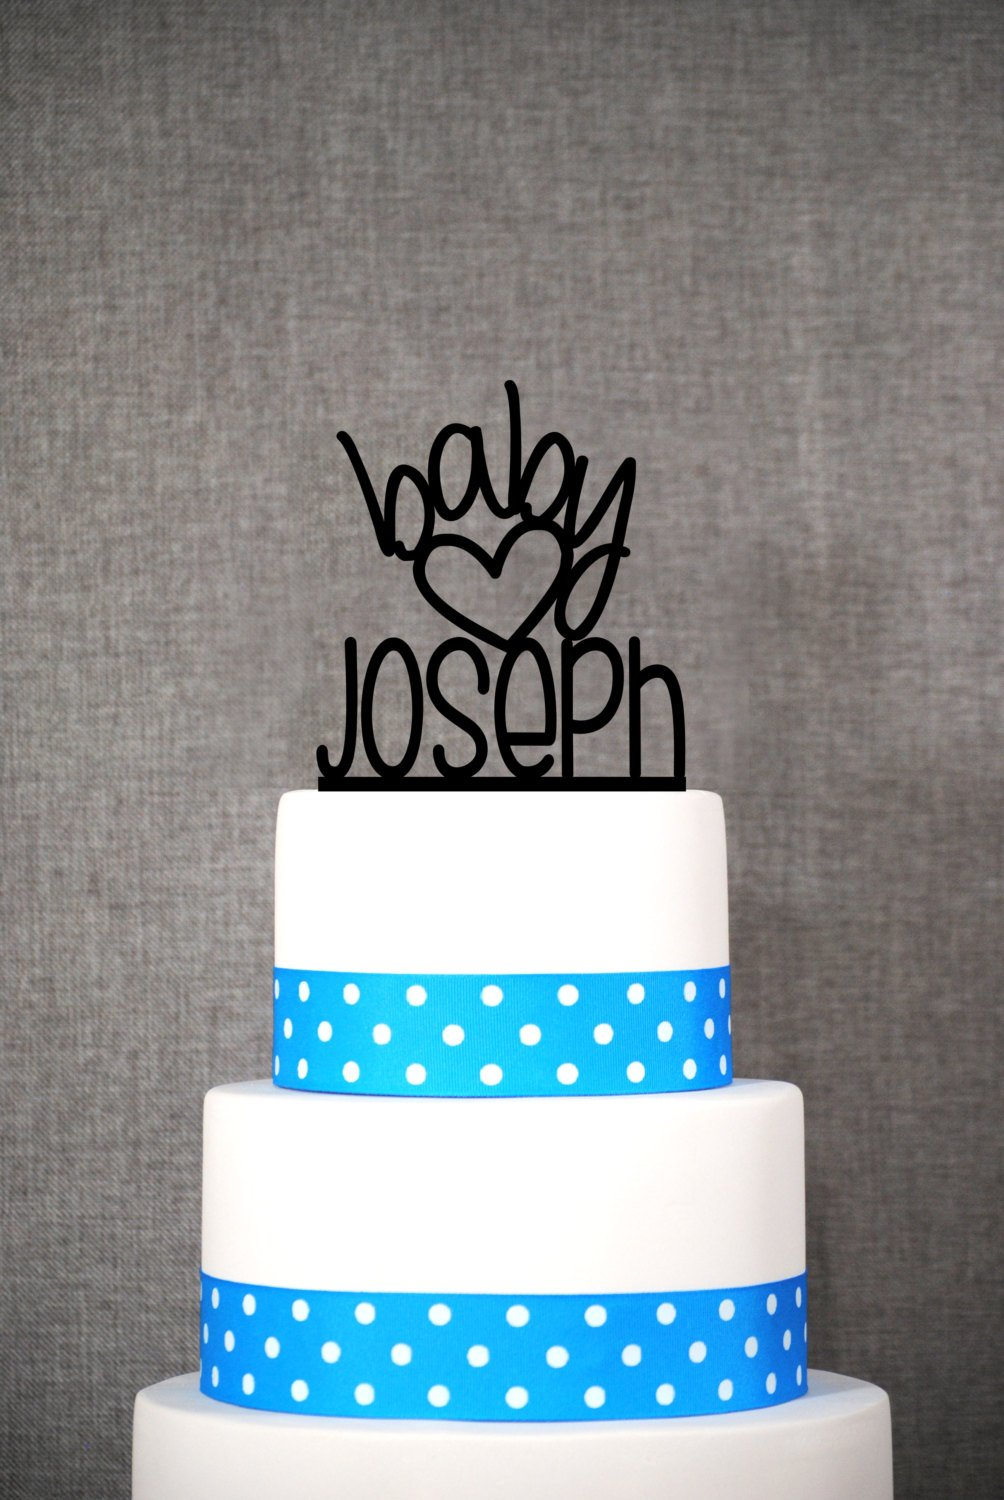 Cute Custom Baby Name Cake Topper Baby Boy Cake Topper Baby Shower Decorations Baby Sprinkle Cake Toper Welcome Baby Cake Topper T073